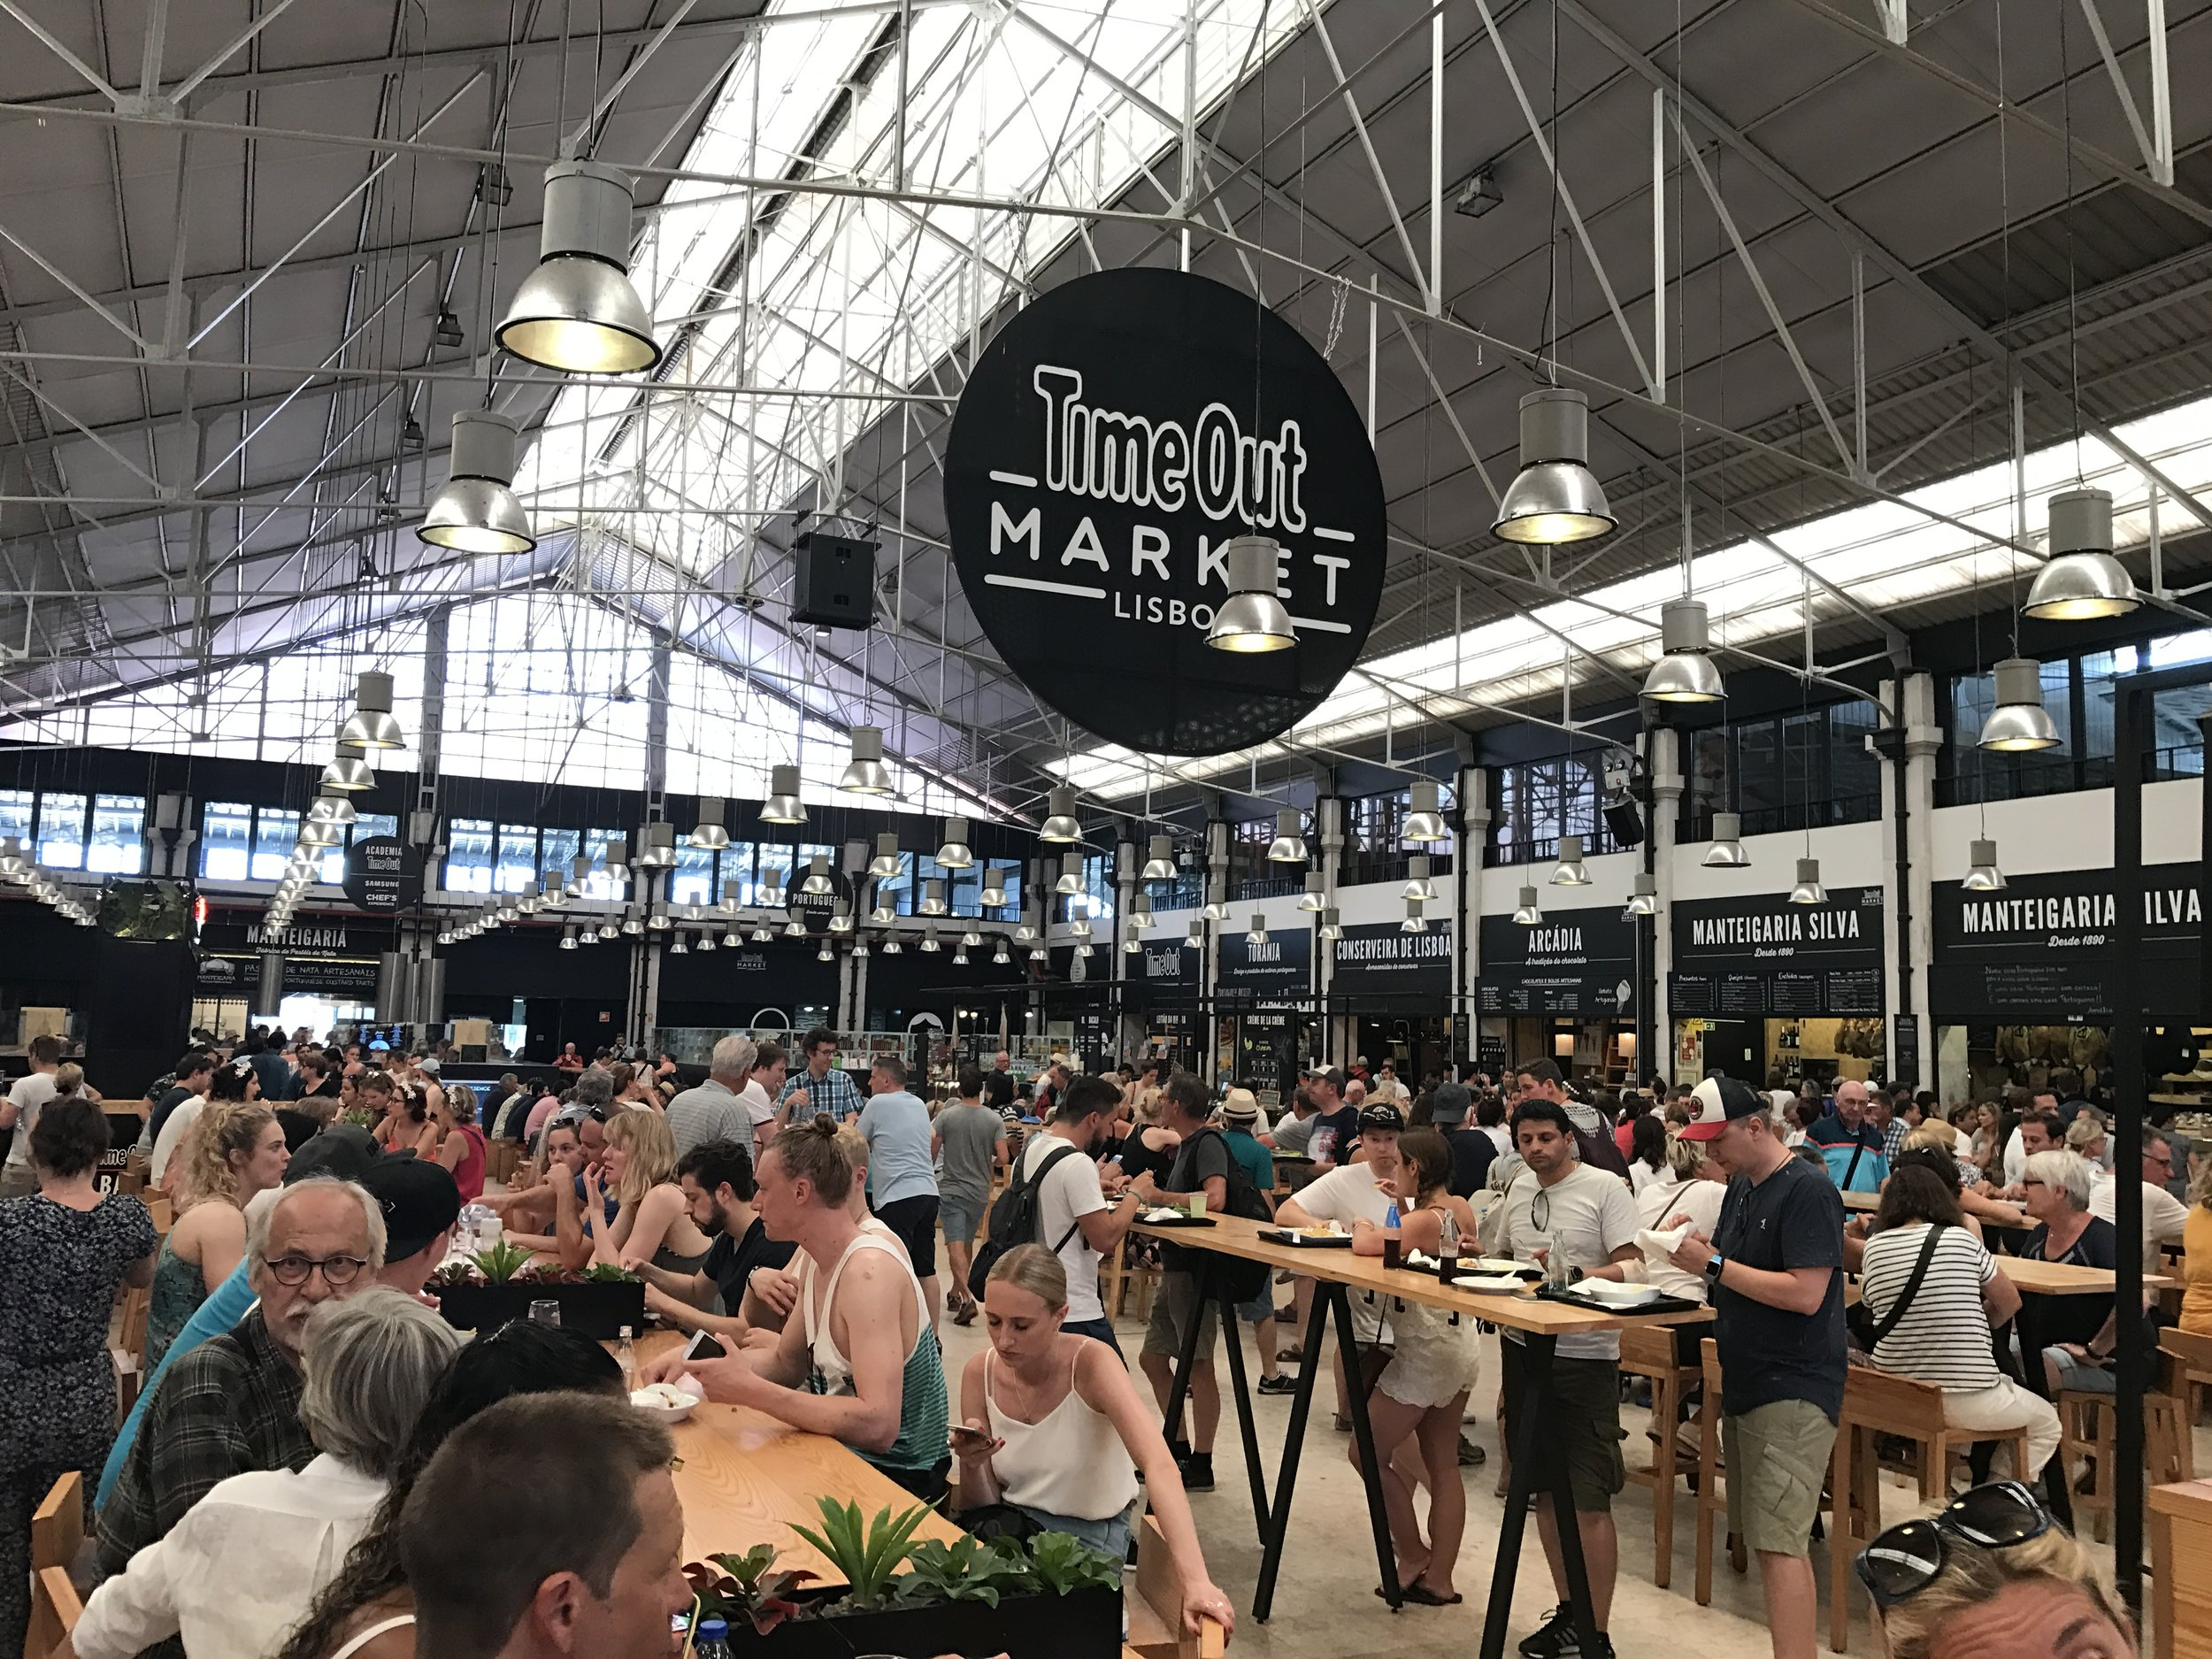 Lisbon's Time Out Market is a must for anyone visiting the Portuguese capital.